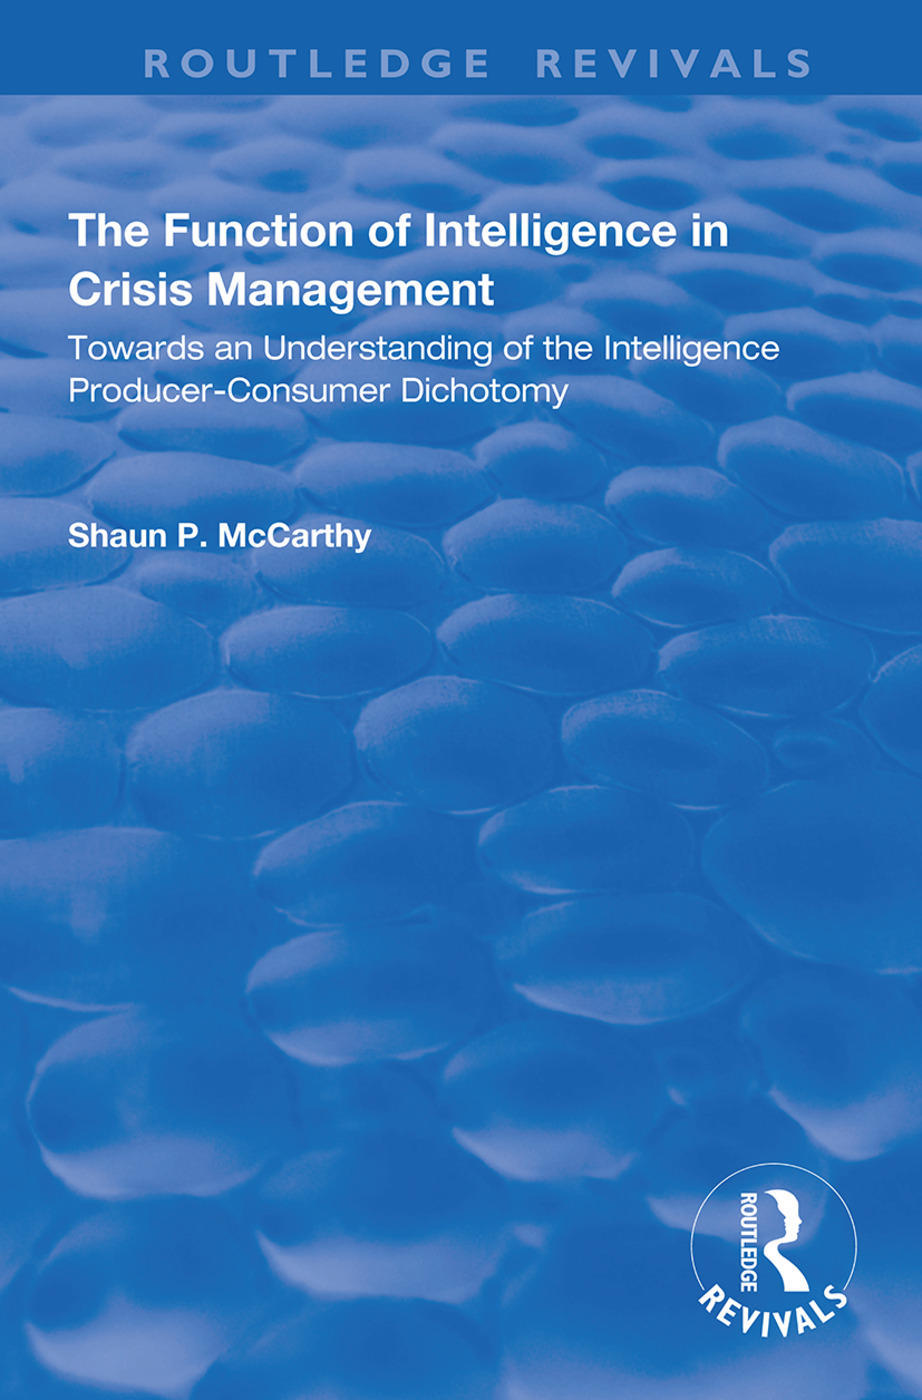 The Function of Intelligence in Crisis Management